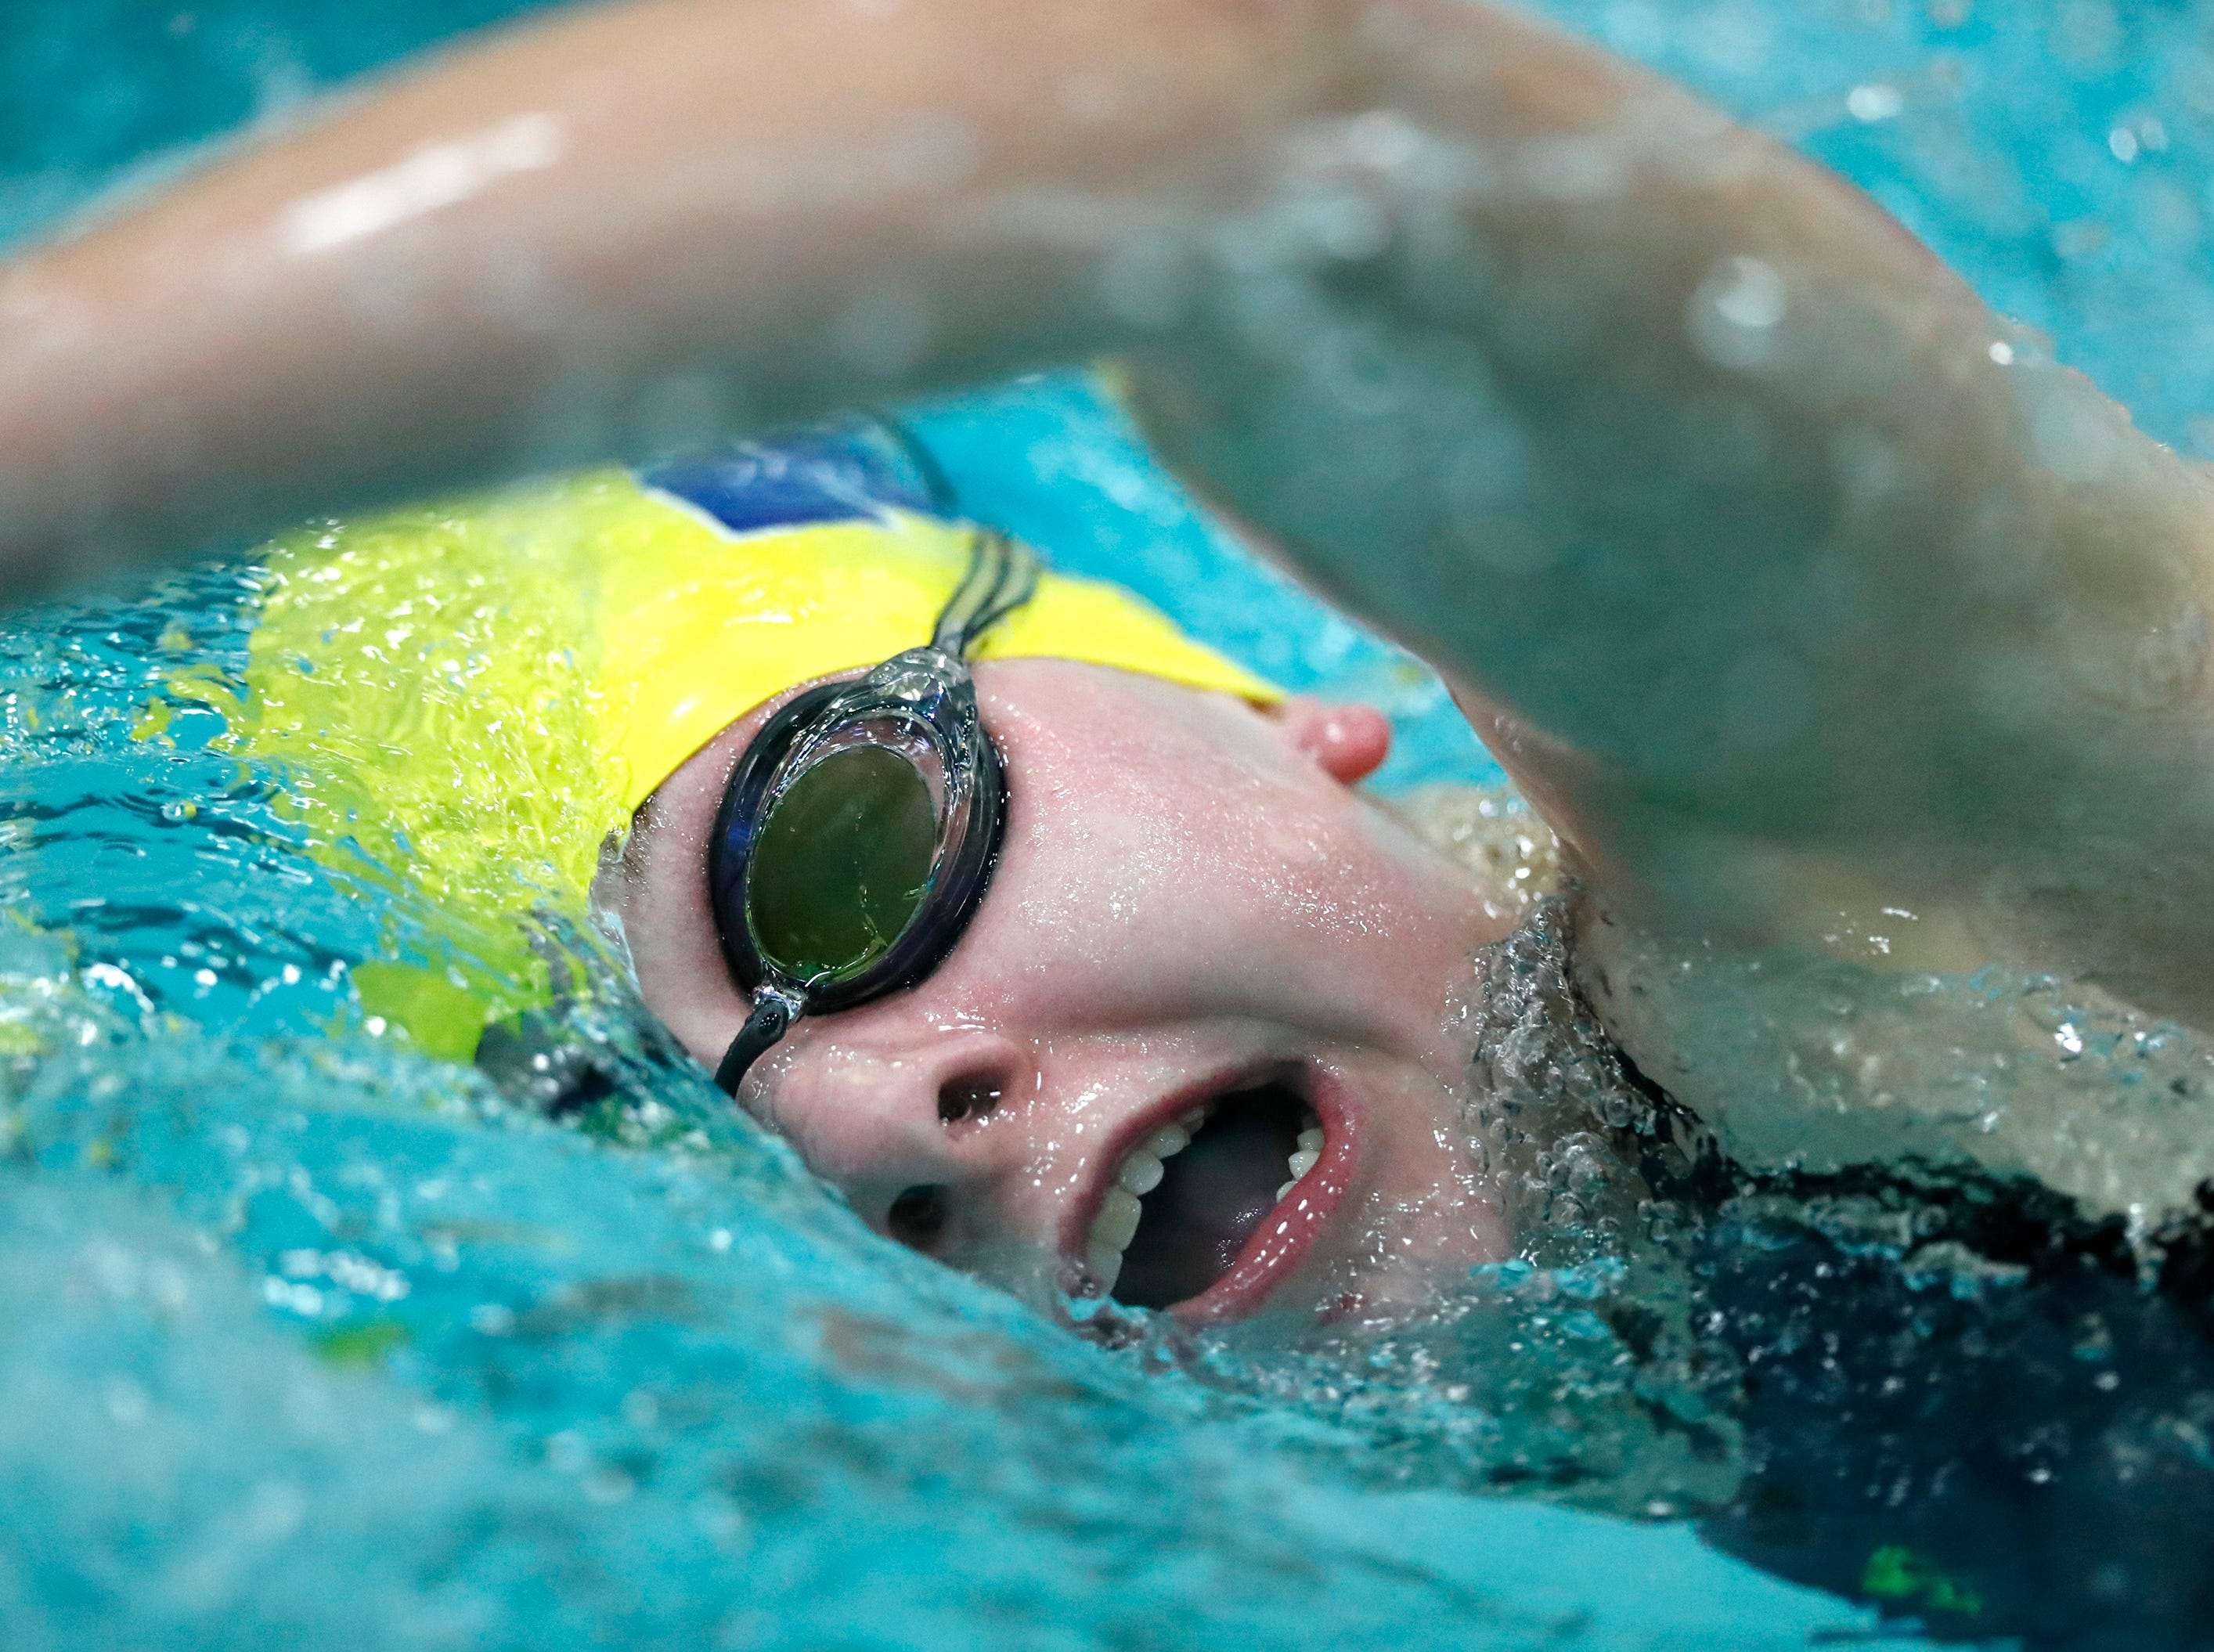 Tomahawk's Megan Marcks races in the 100 yard freestyle during the WIAA Division 2 State Swimming and Diving meet Friday, Nov. 9, 2018, at the UW Natatorium in Madison, Wis.Danny Damiani/USA TODAY NETWORK-Wisconsin